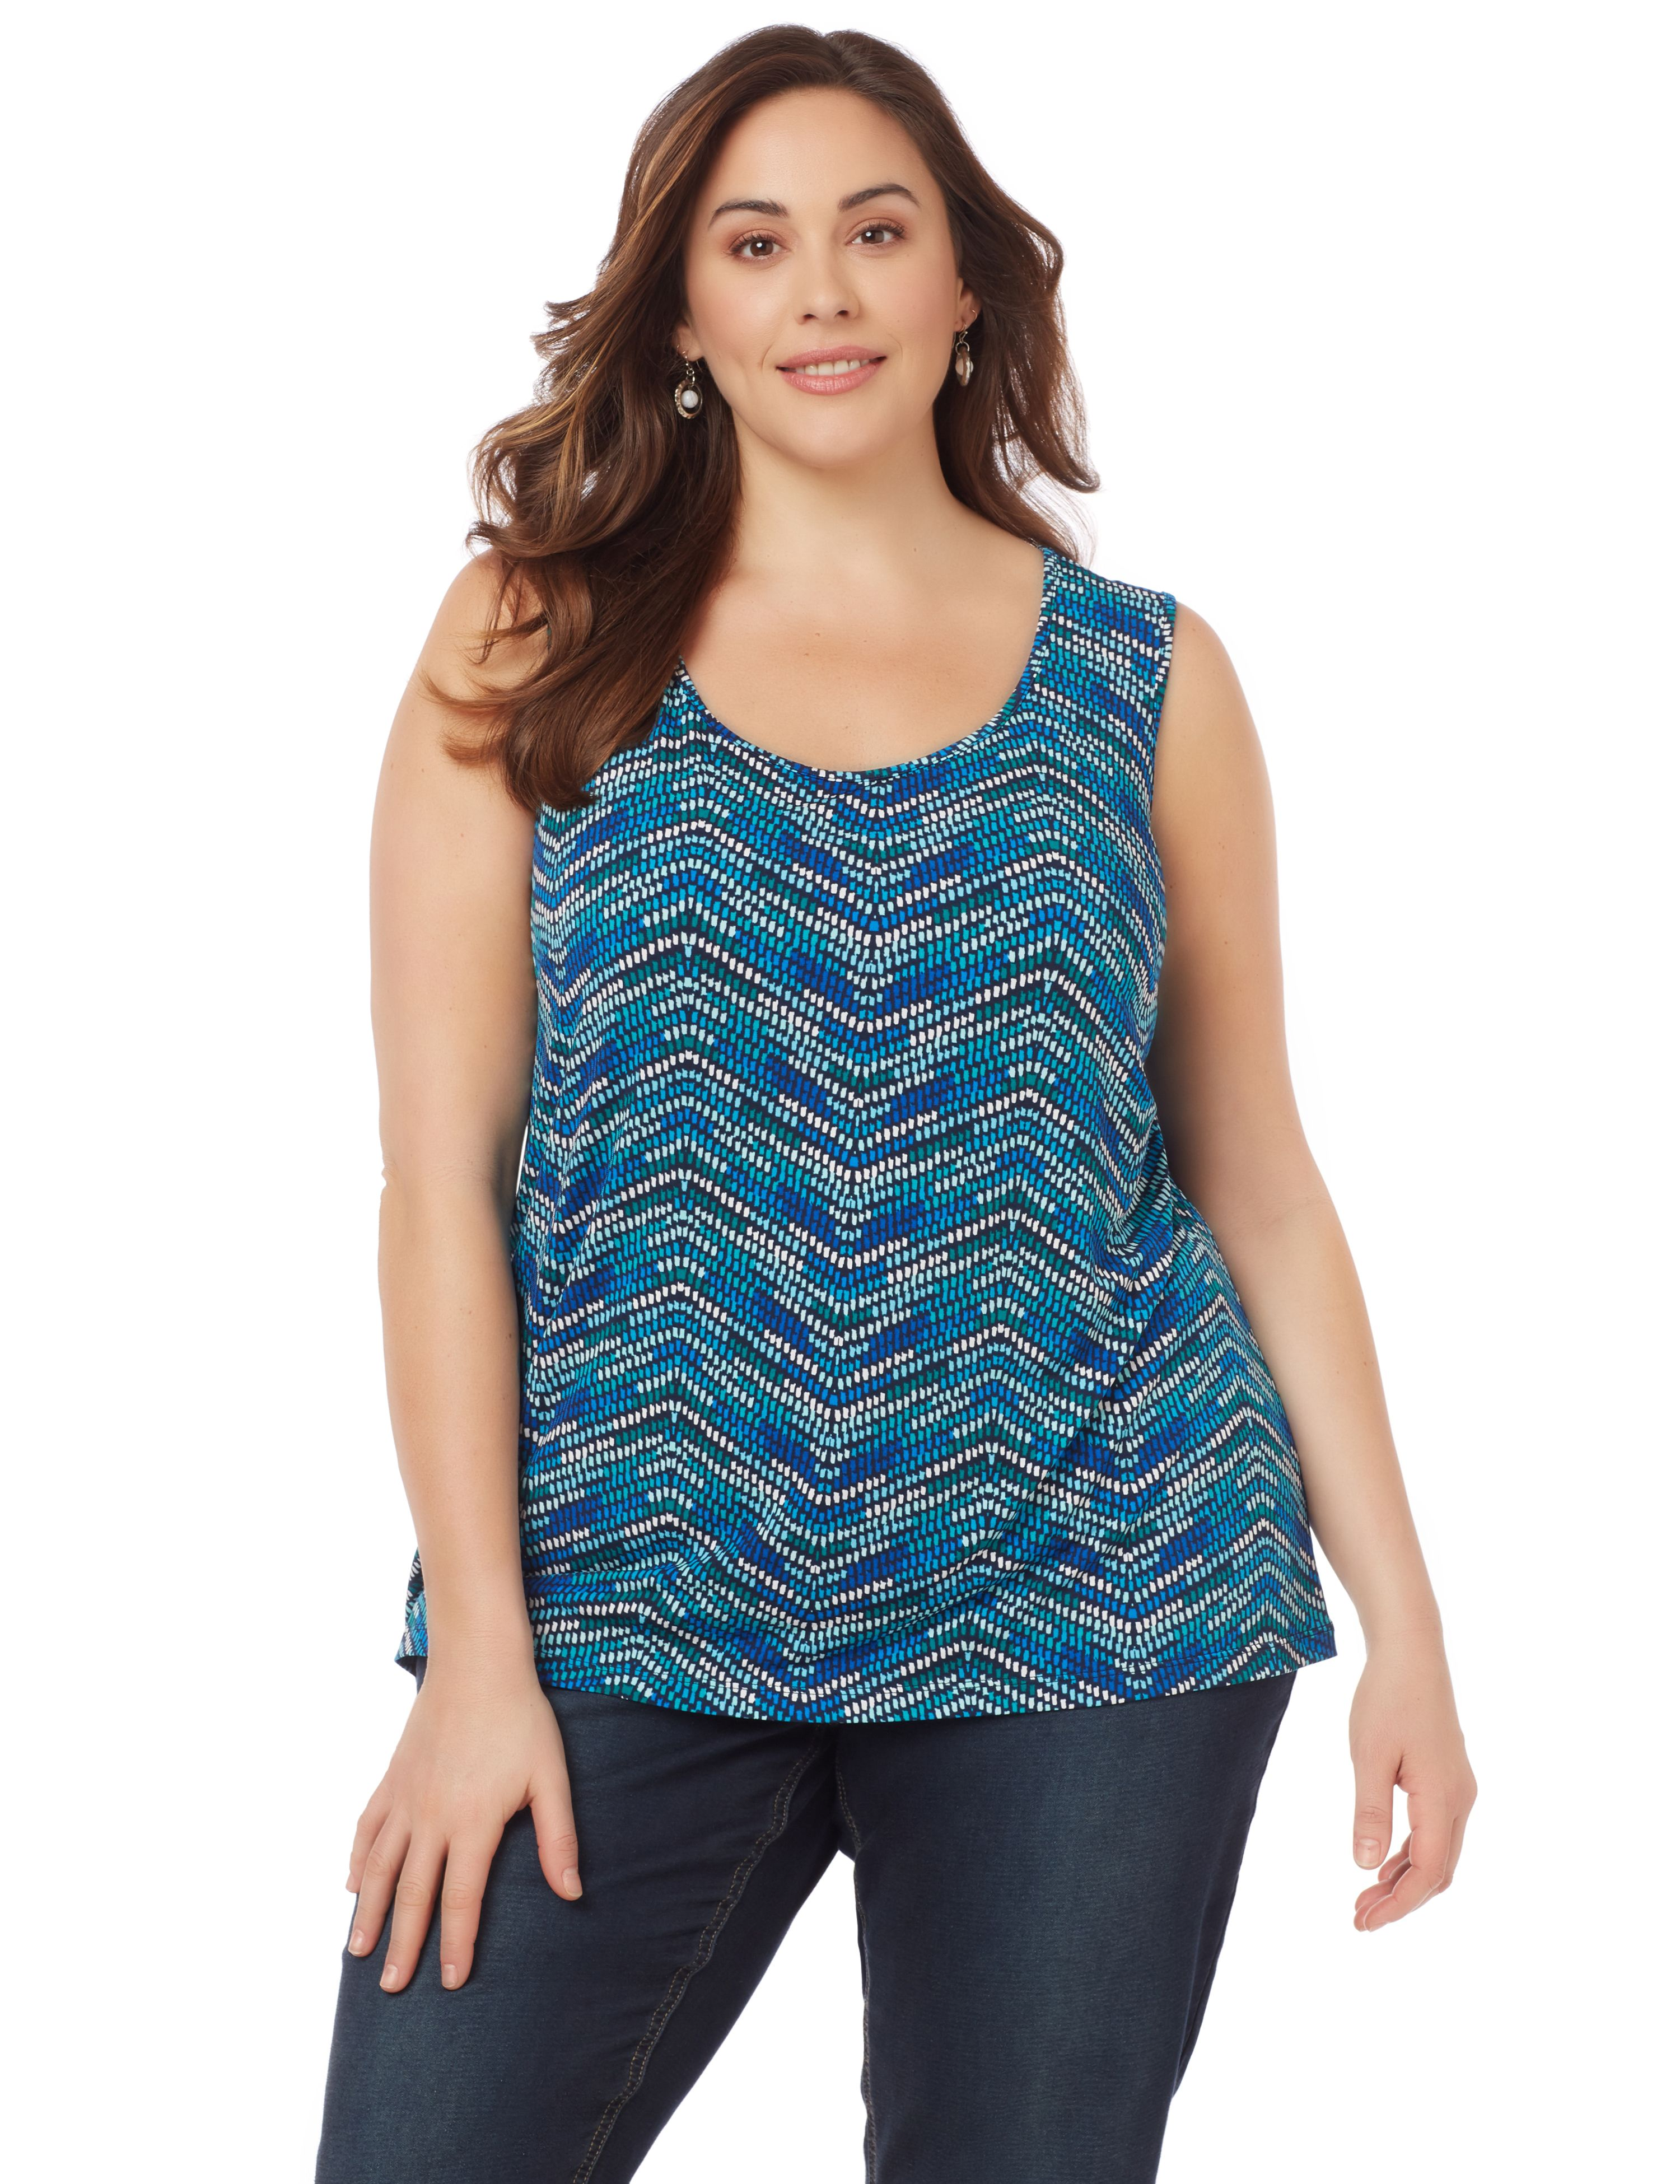 Mixed Print Tank PP Printed Scoop Neck Tank MP-300097909